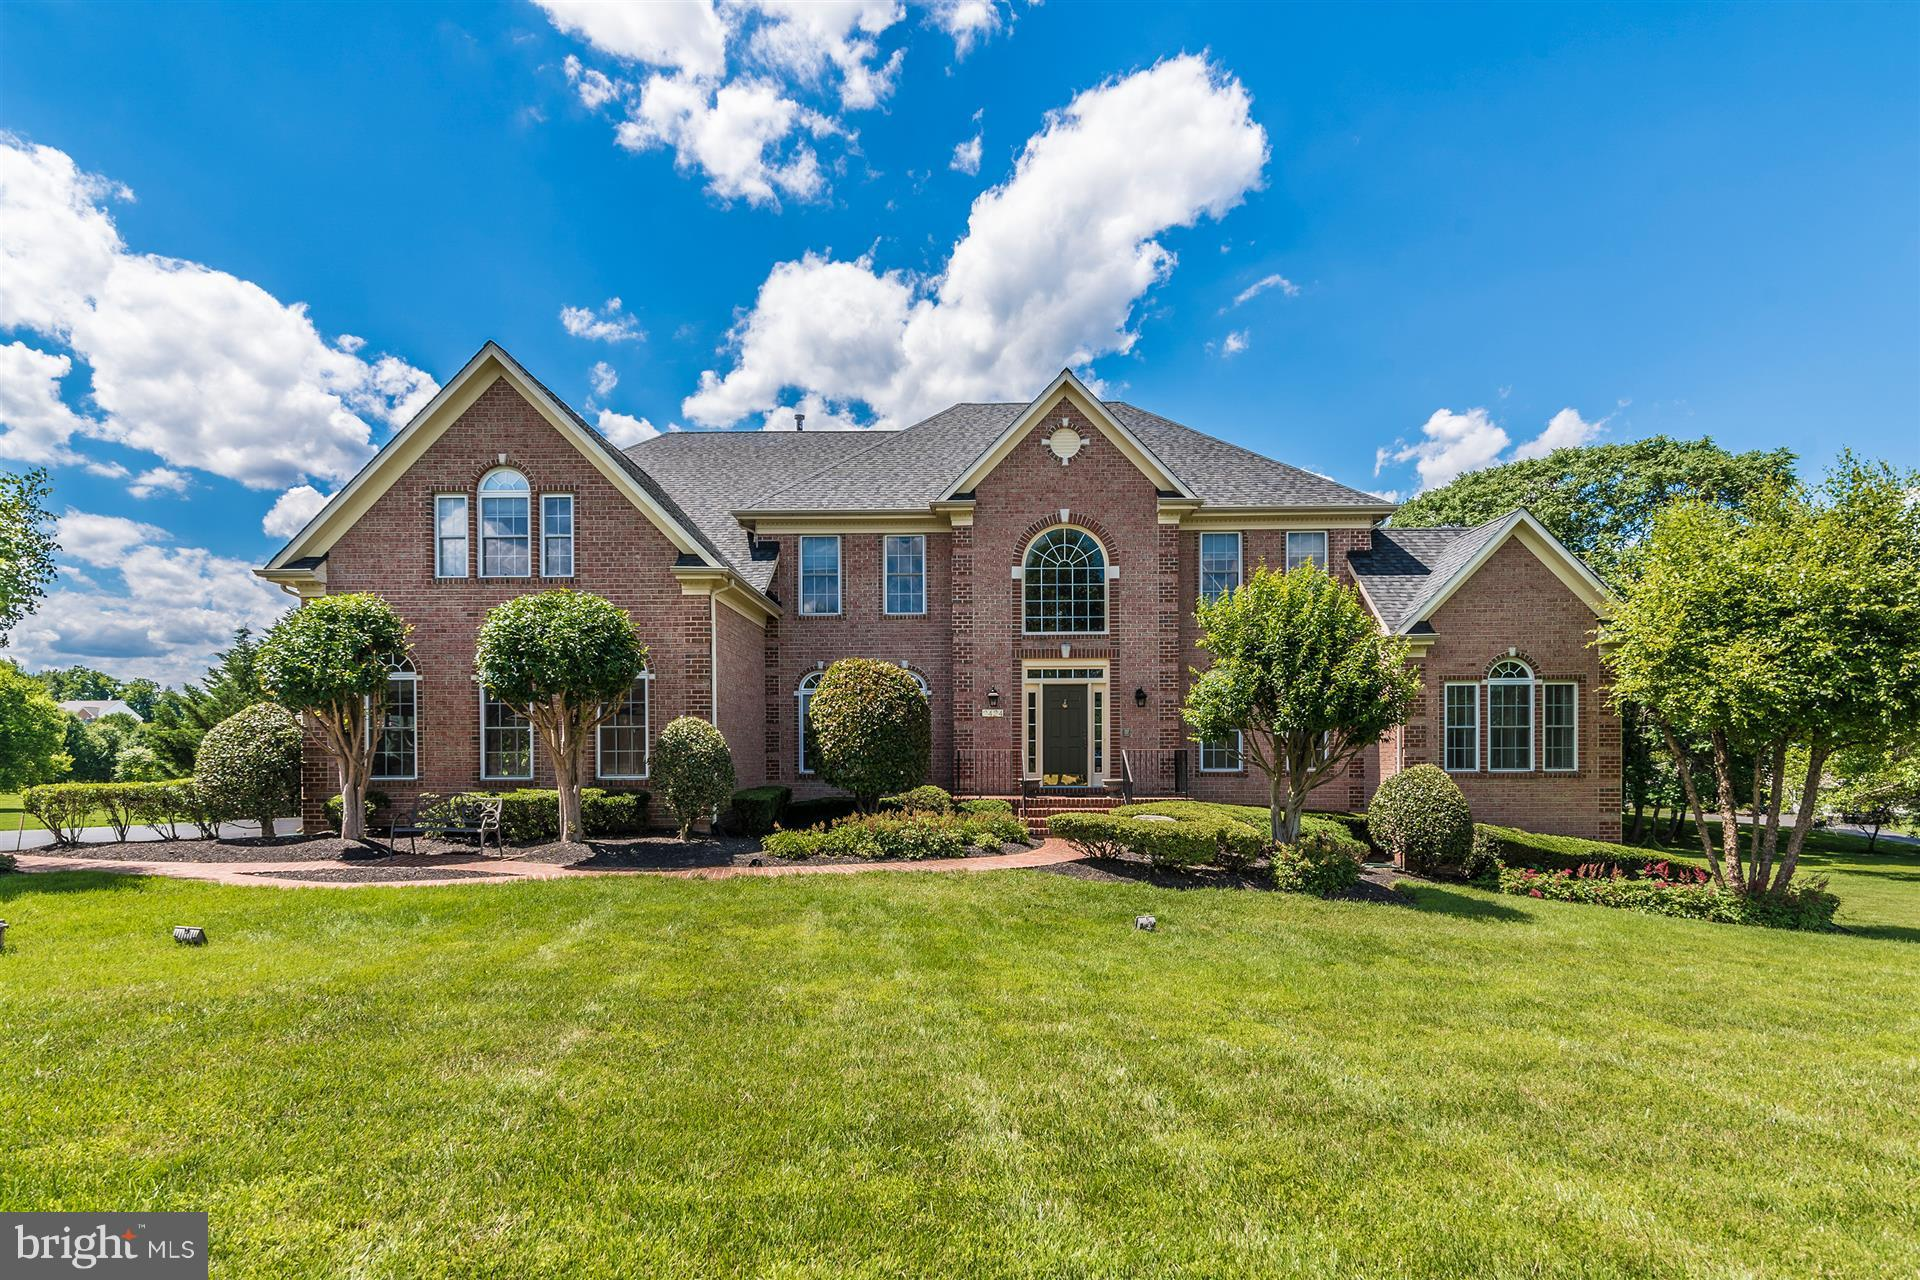 2424 SAPLING RIDGE LANE, BROOKEVILLE, MD 20833